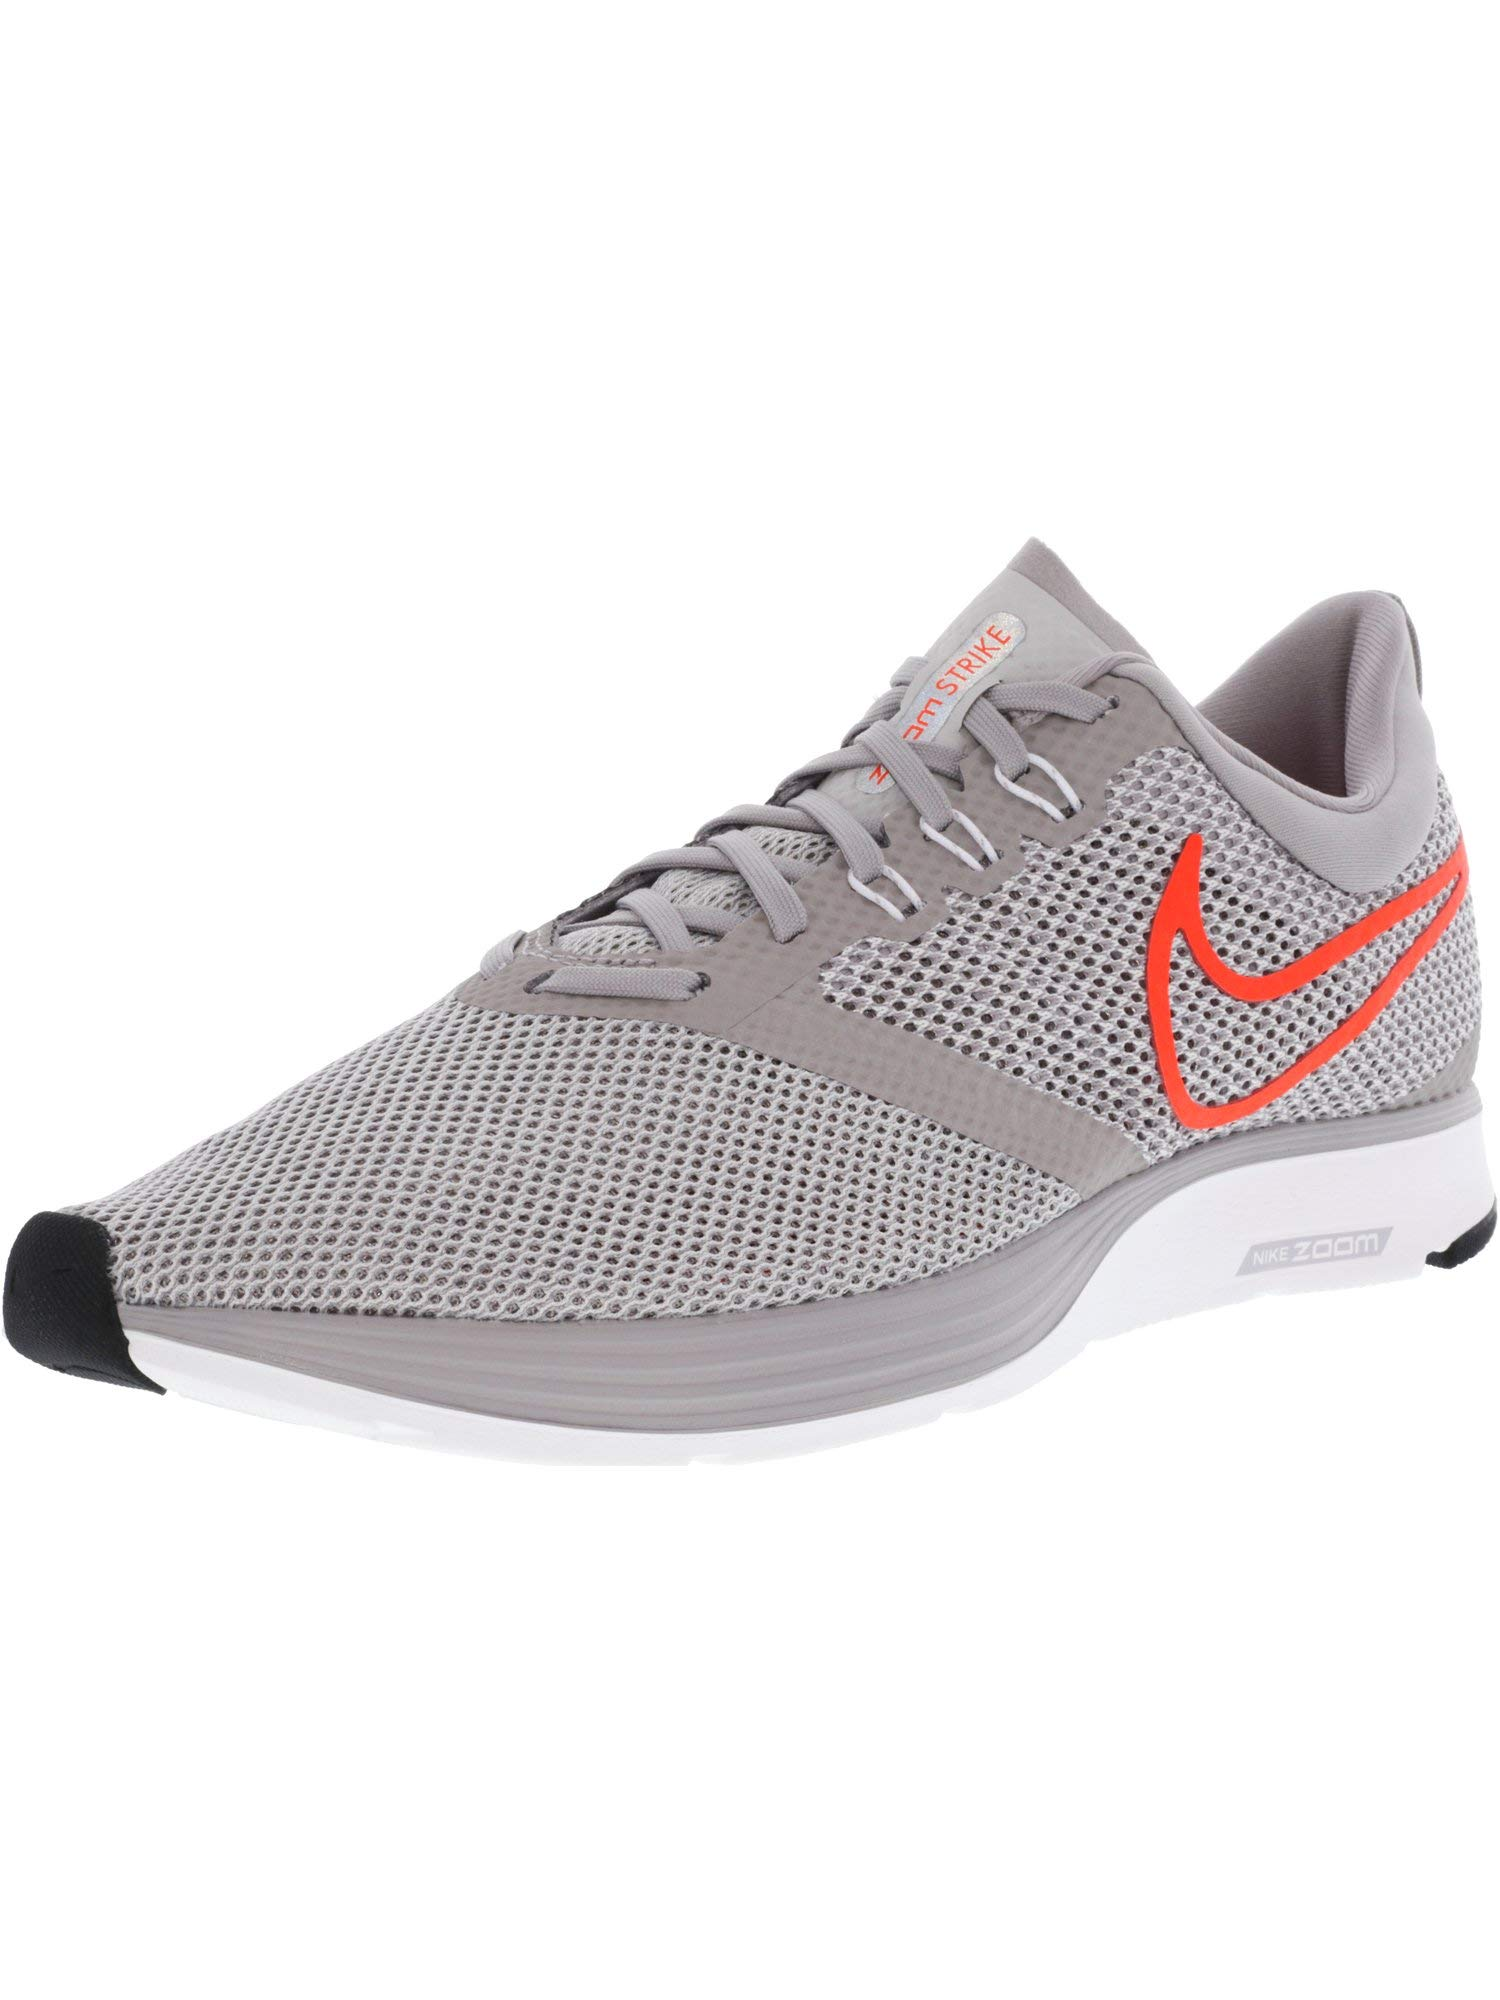 67b75f2325b3 Galleon - Nike Men s Zoom Strike Atmosphere Grey Total Crimson Ankle-High  Mesh Running Shoe - 12M